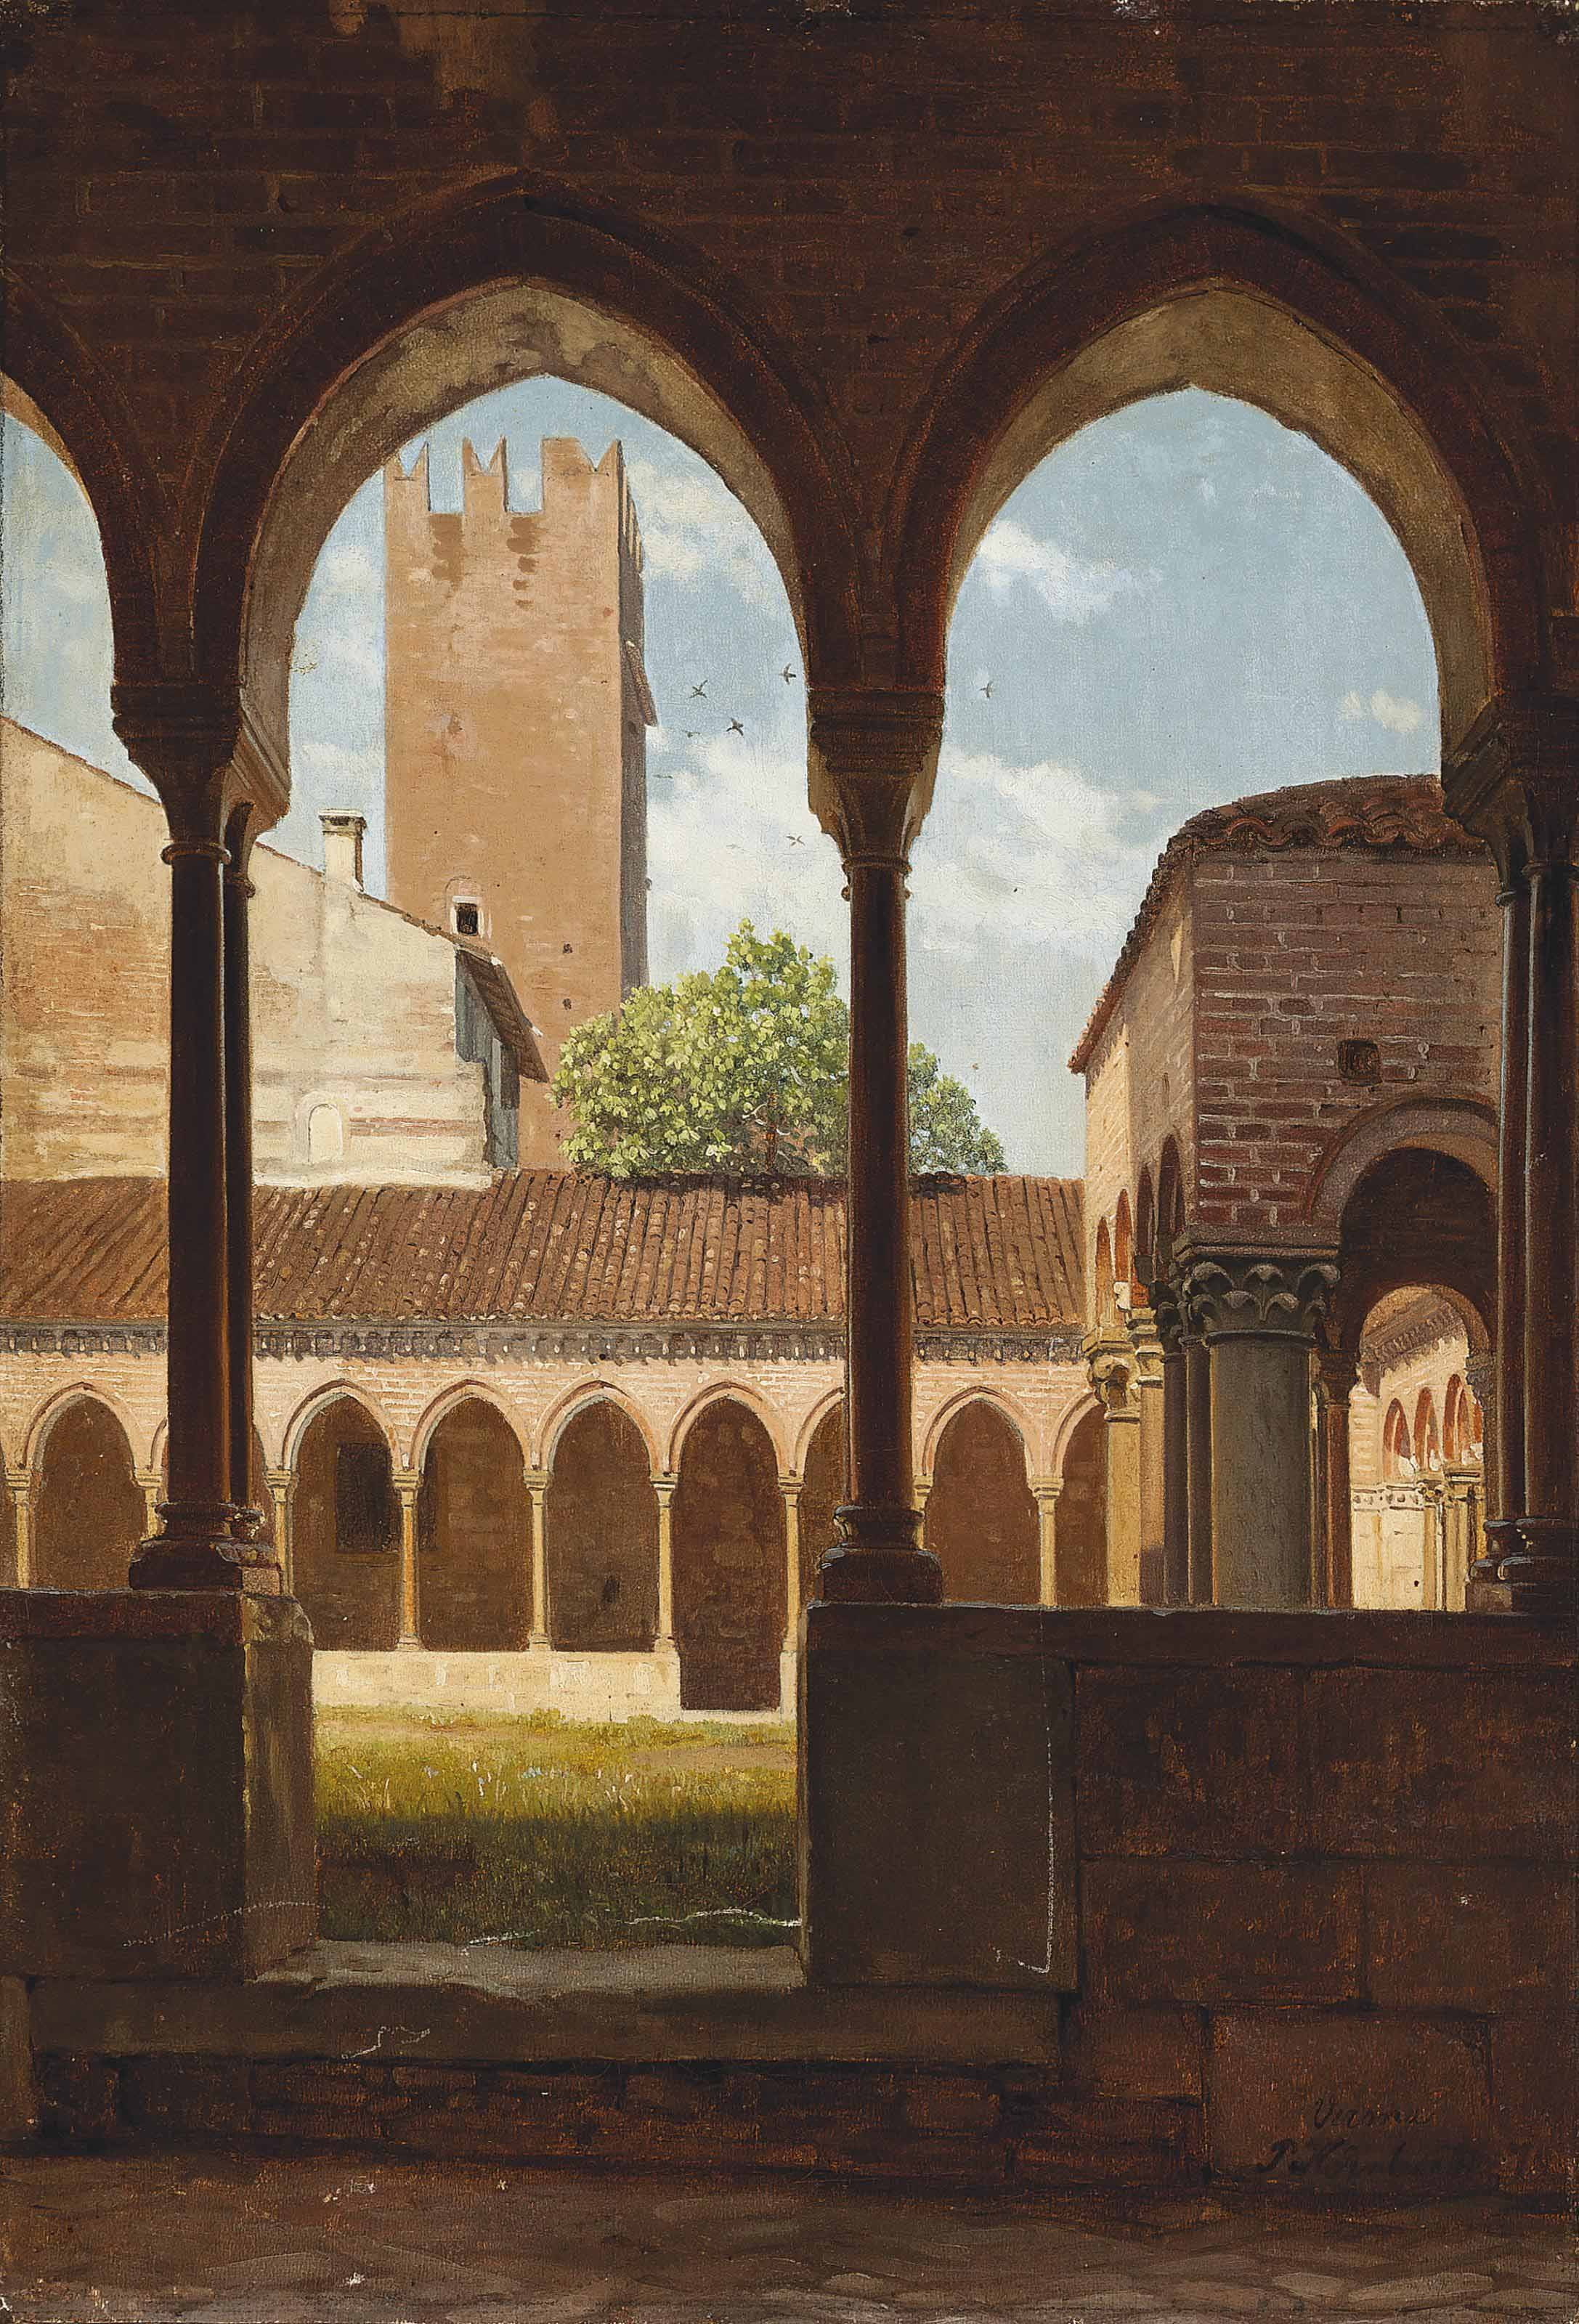 The cloisters of San Zeno, Verona